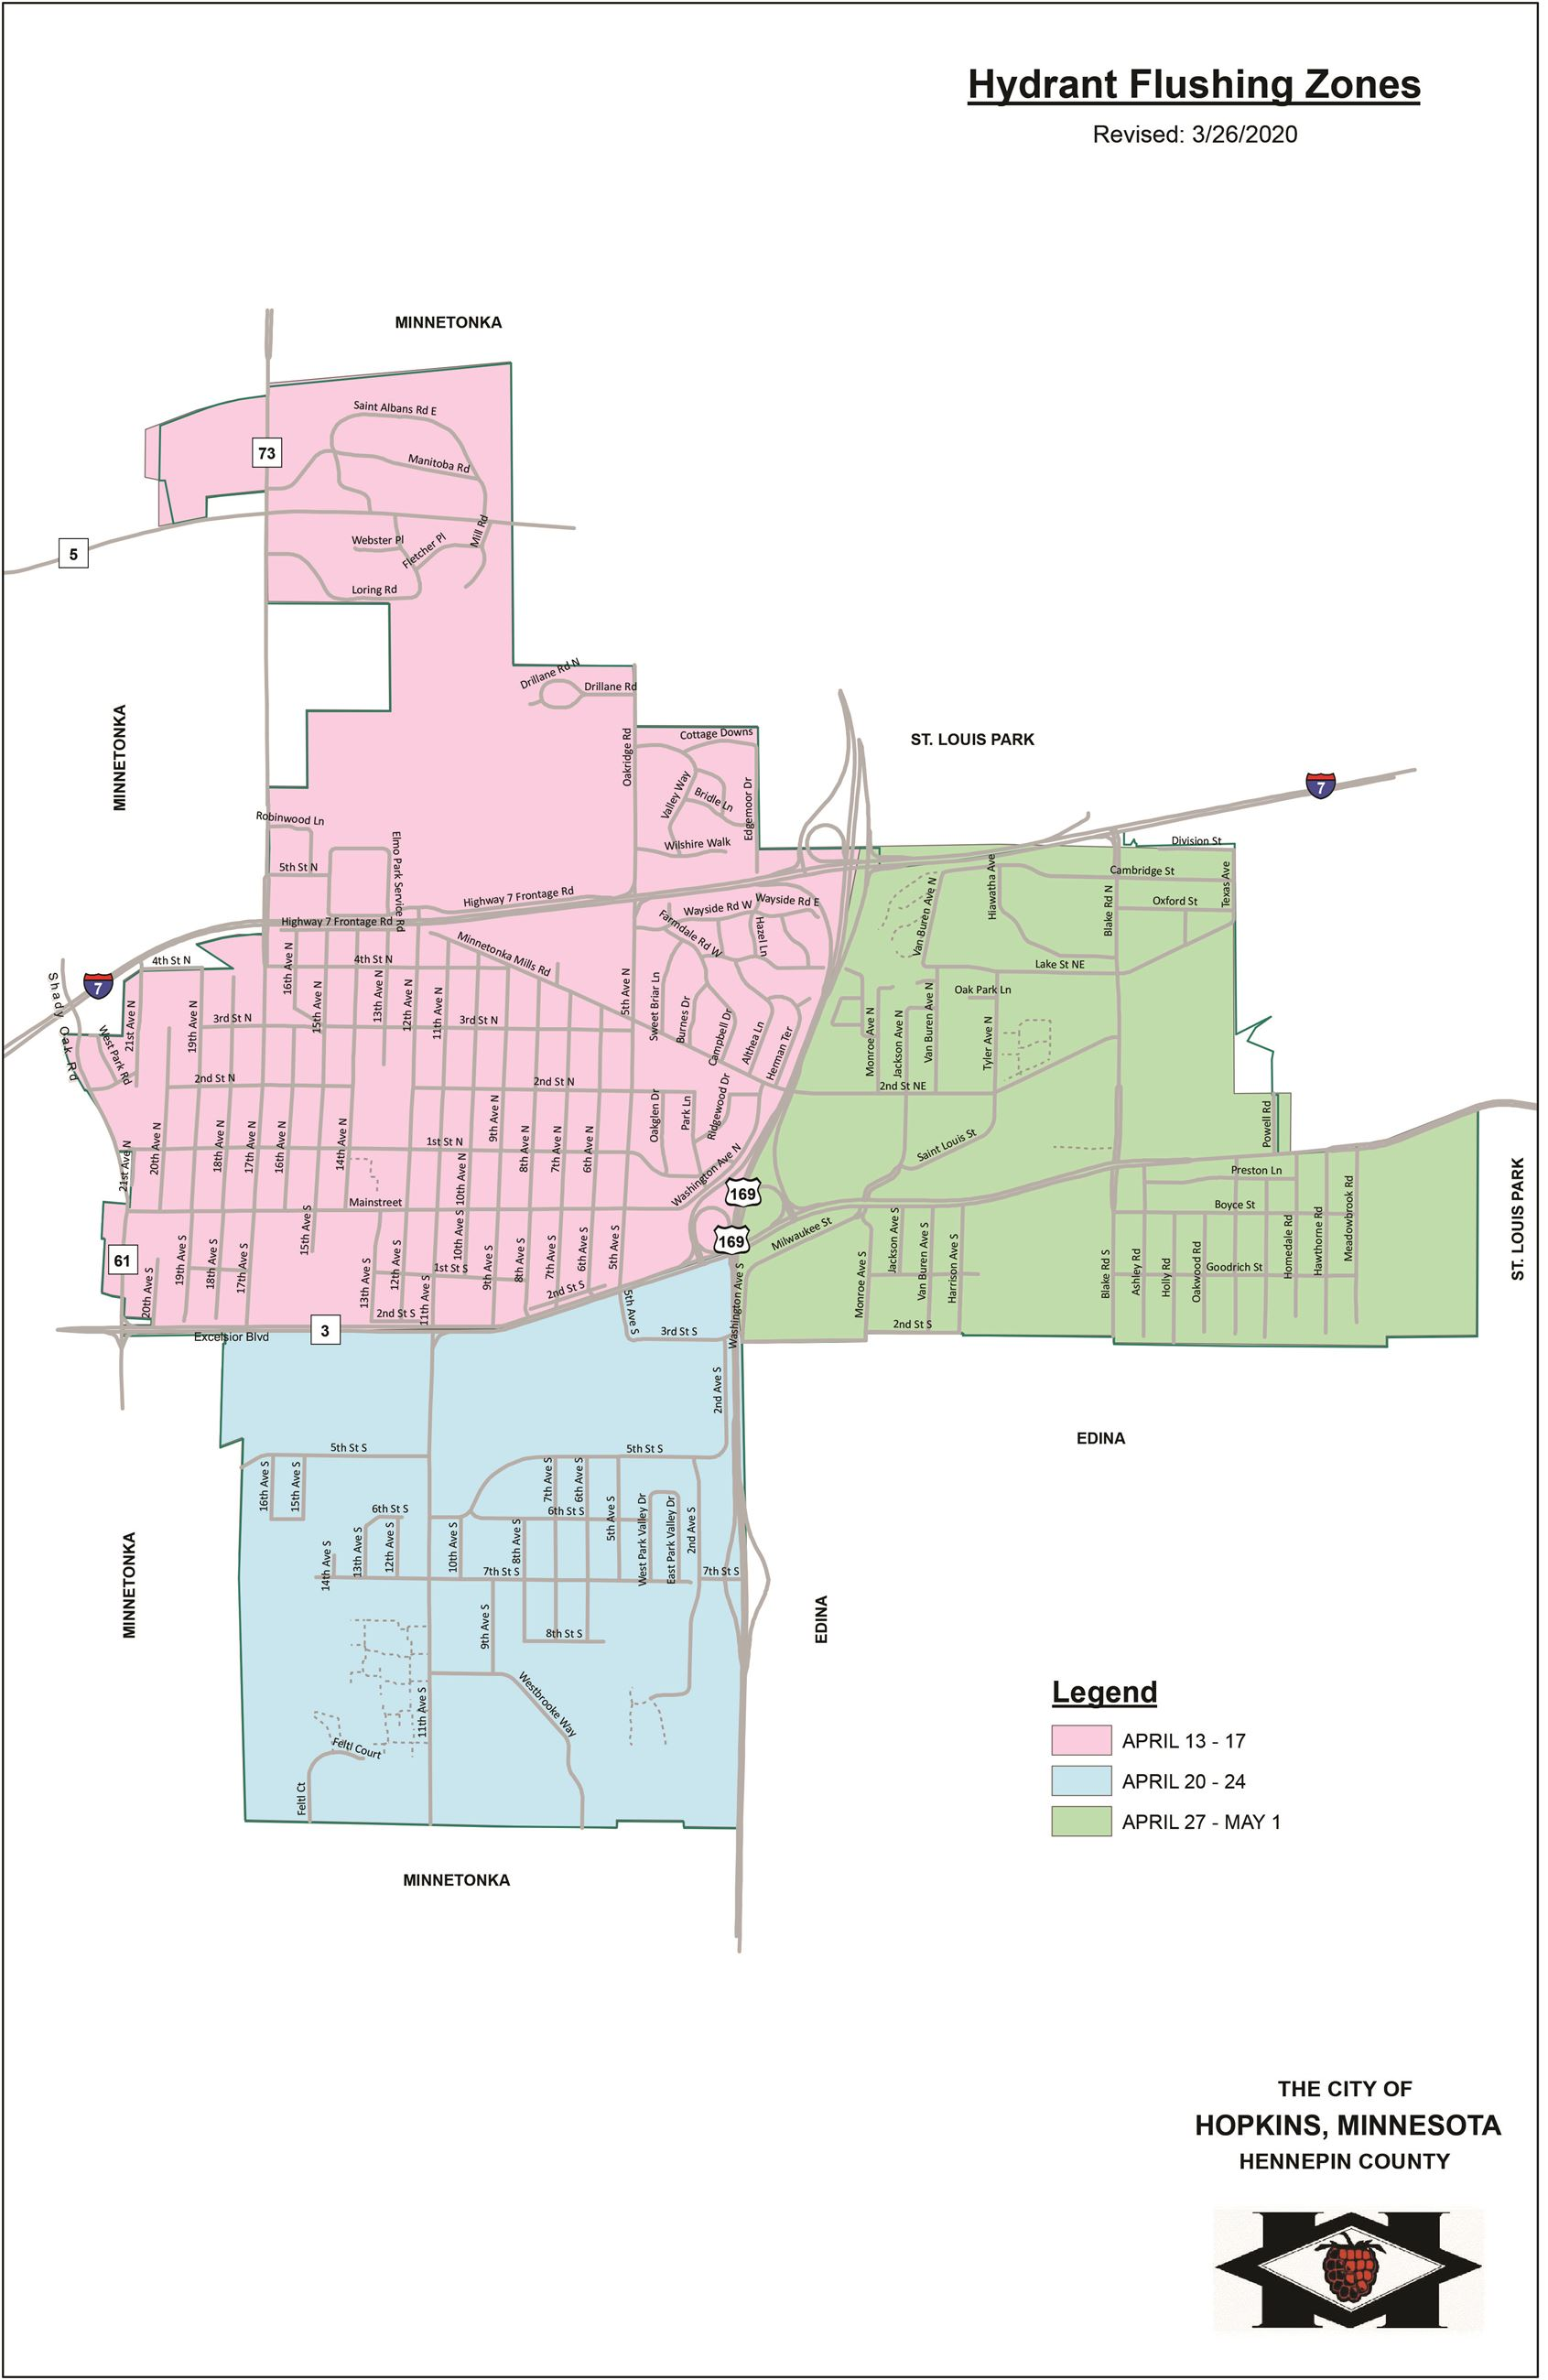 2020 Hydrant Flushing Zones Map